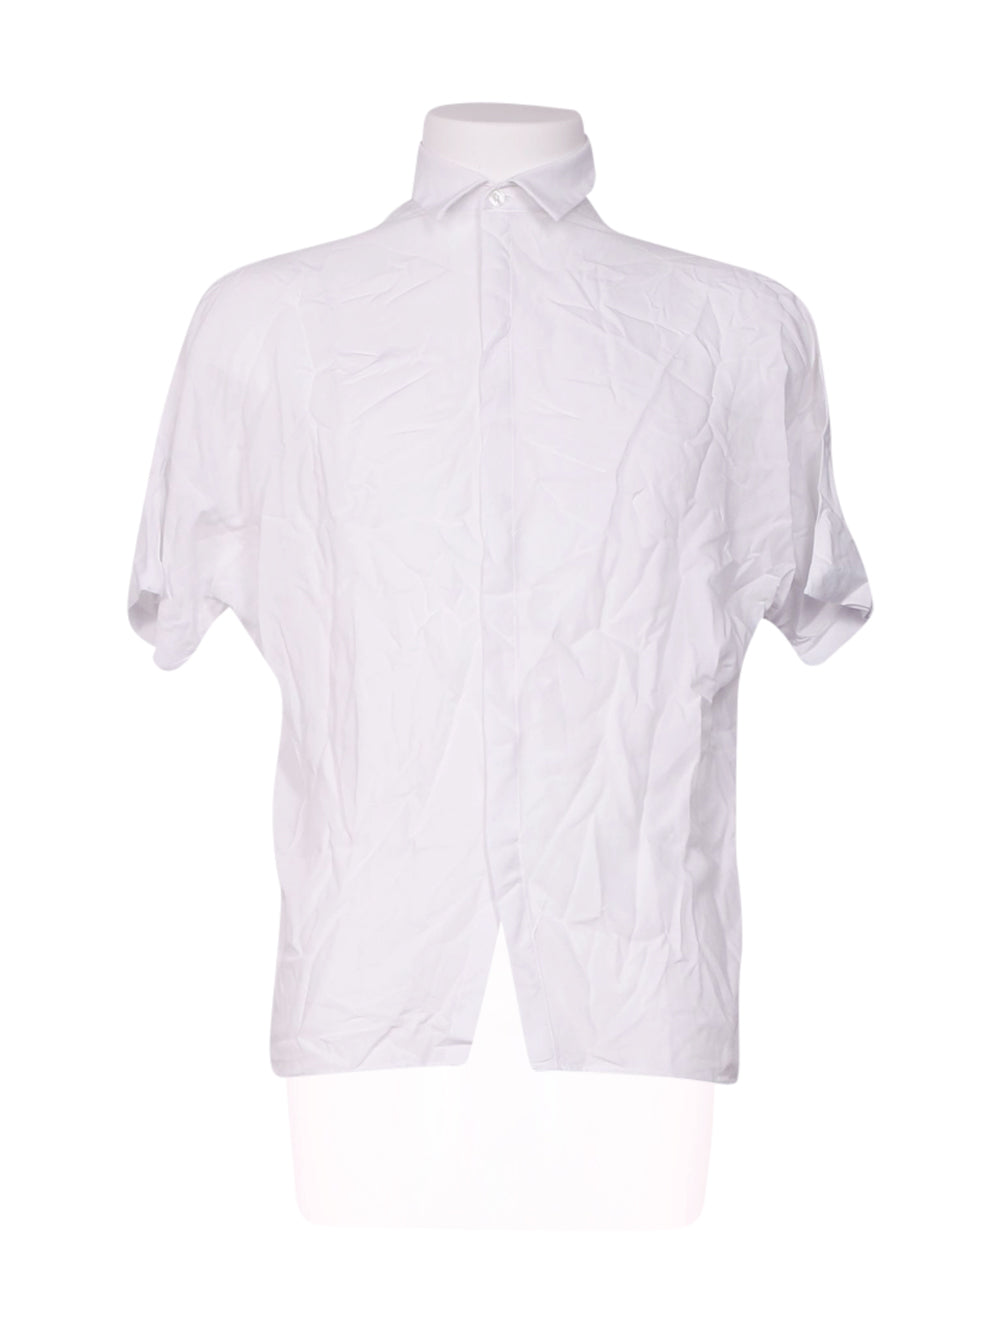 Front photo of Preloved Asos White Man's shirt - size 36/S